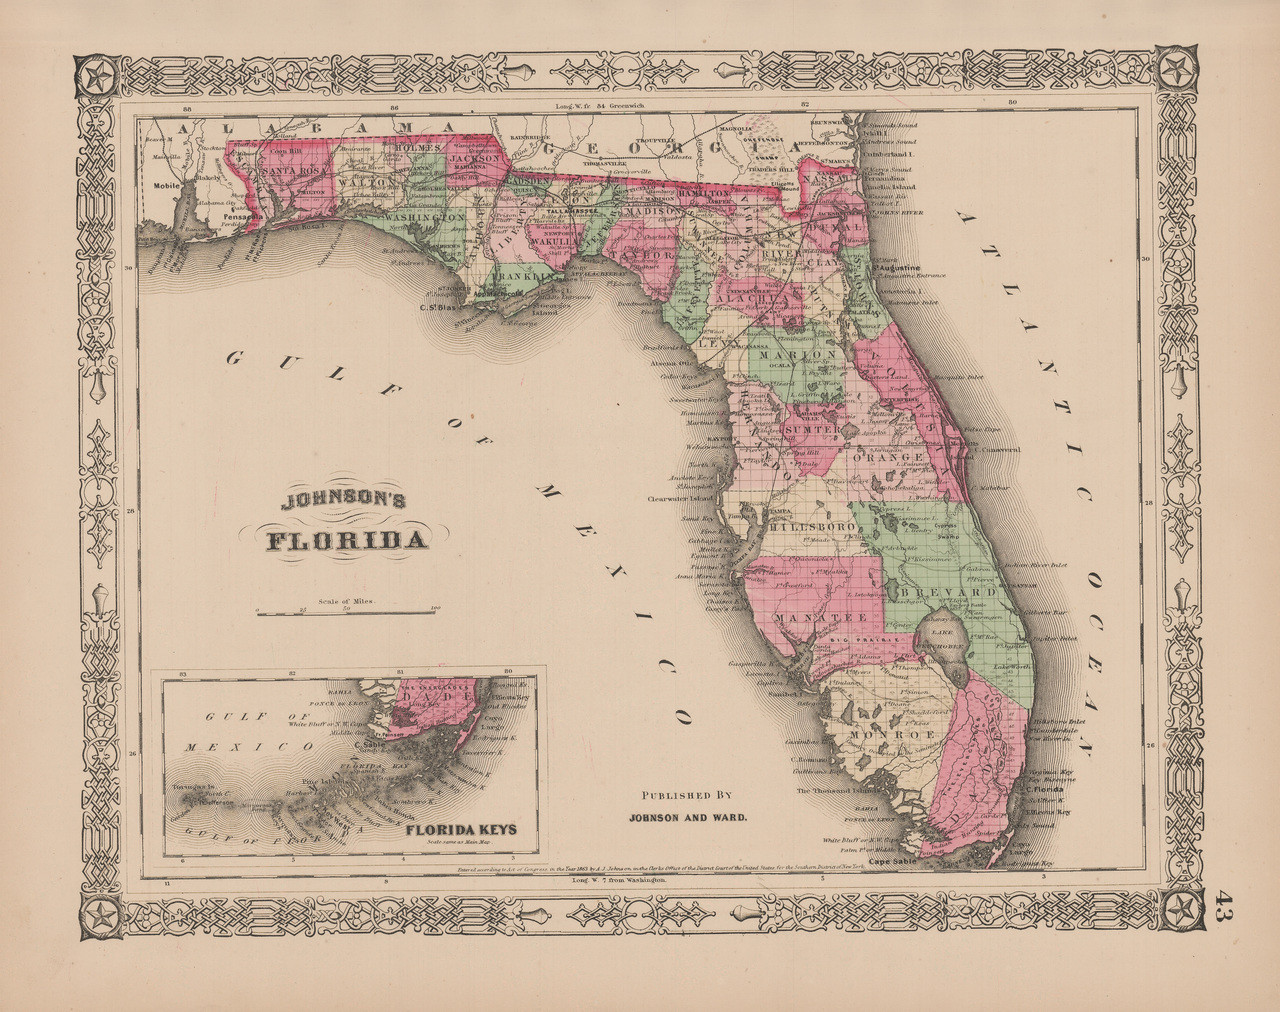 Antique Map Of Florida.Original Florida Antique Map Johnson 1865 For Sale Home Decor Ideas